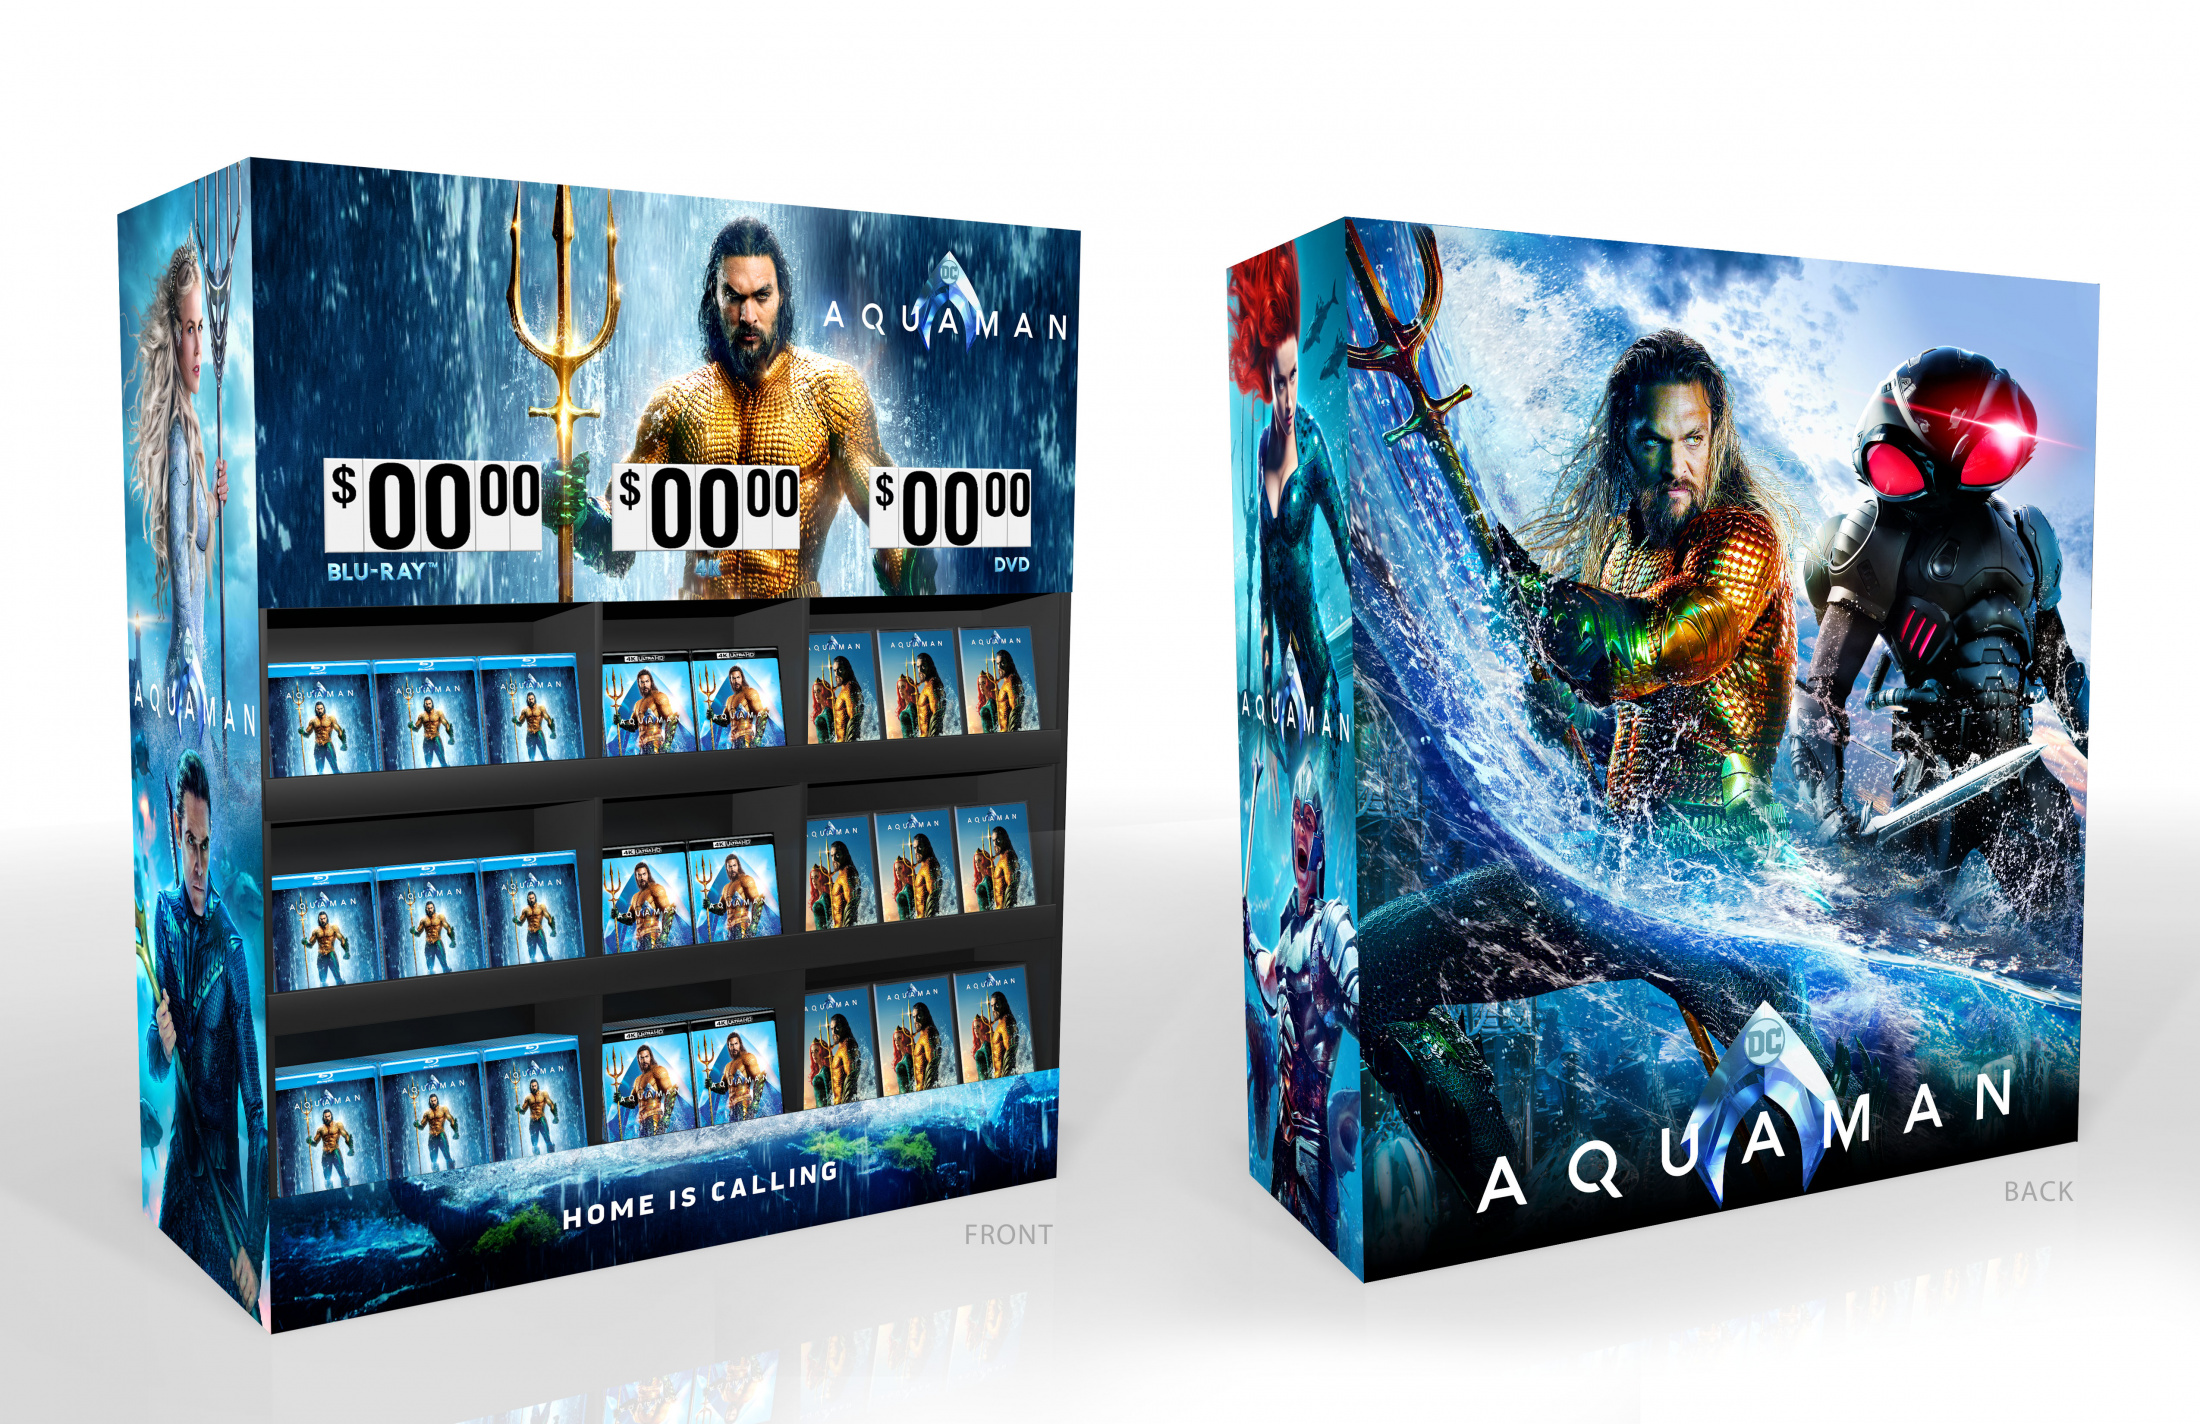 Thumbnail for Aquaman Home Entertainment Walmart Display Home Video Cube